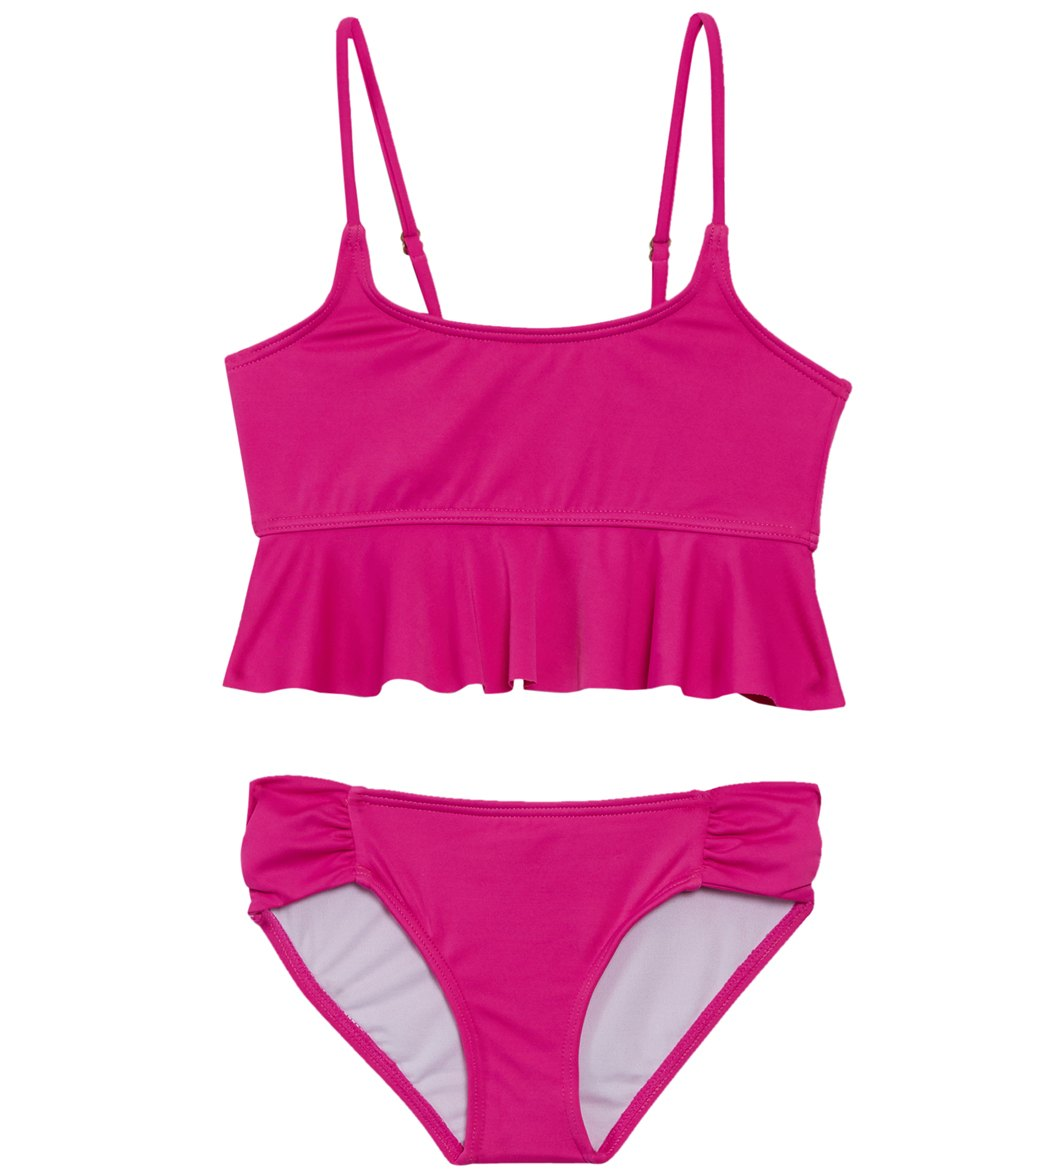 ba2202b475 Billabong Girls' Sol Searcher Flutter Bikini Set (Little Kid, Big Kid) at  SwimOutlet.com - Free Shipping